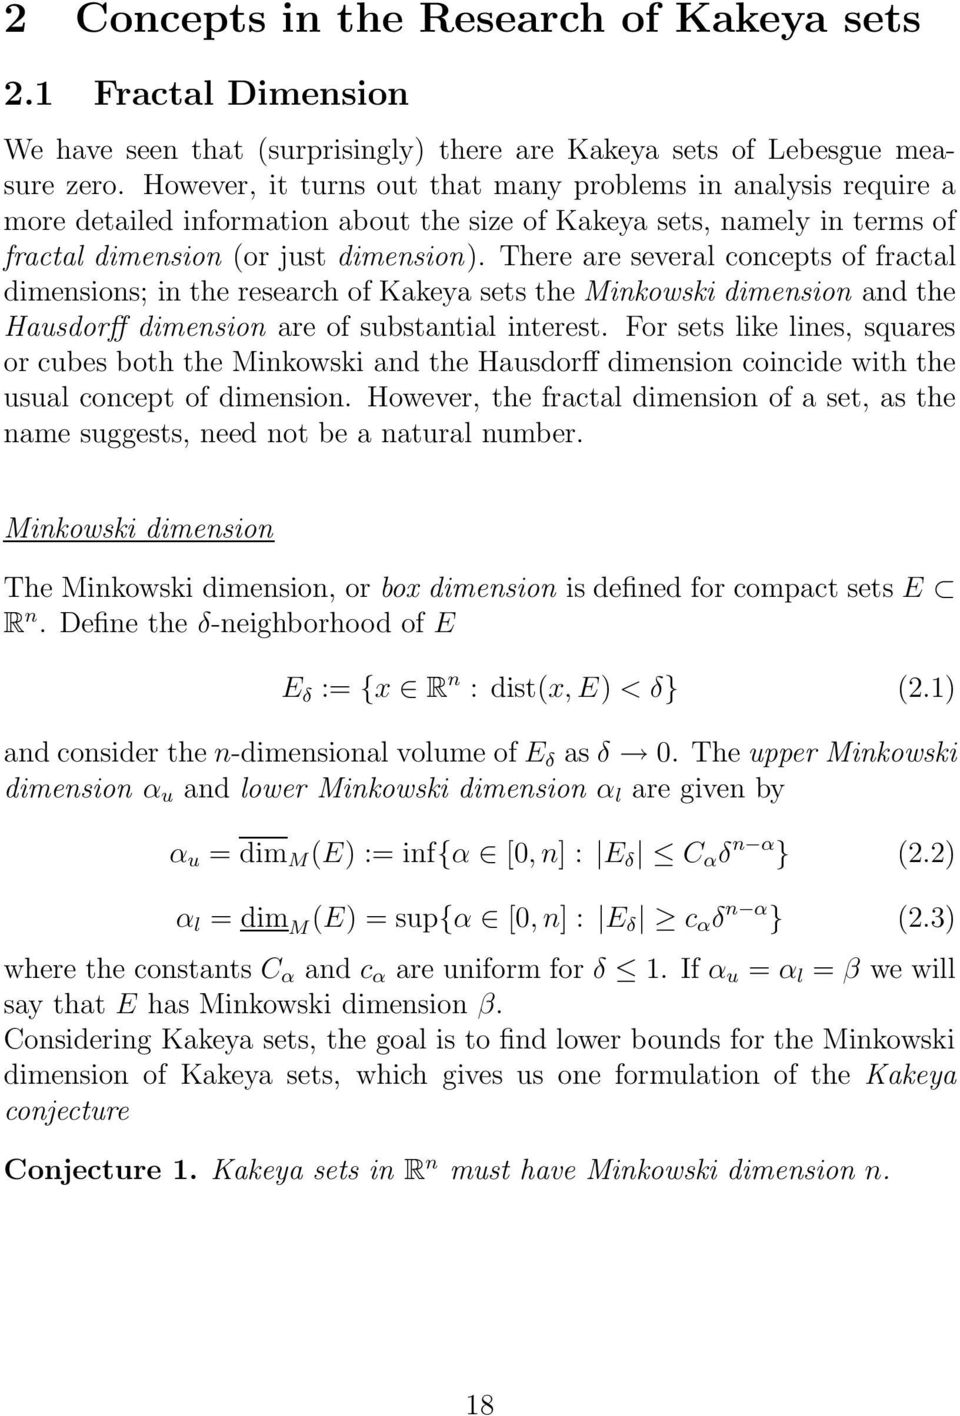 There are several concepts of fractal dimensions; in the research of Kakeya sets the Minkowski dimension and the Hausdorff dimension are of substantial interest.